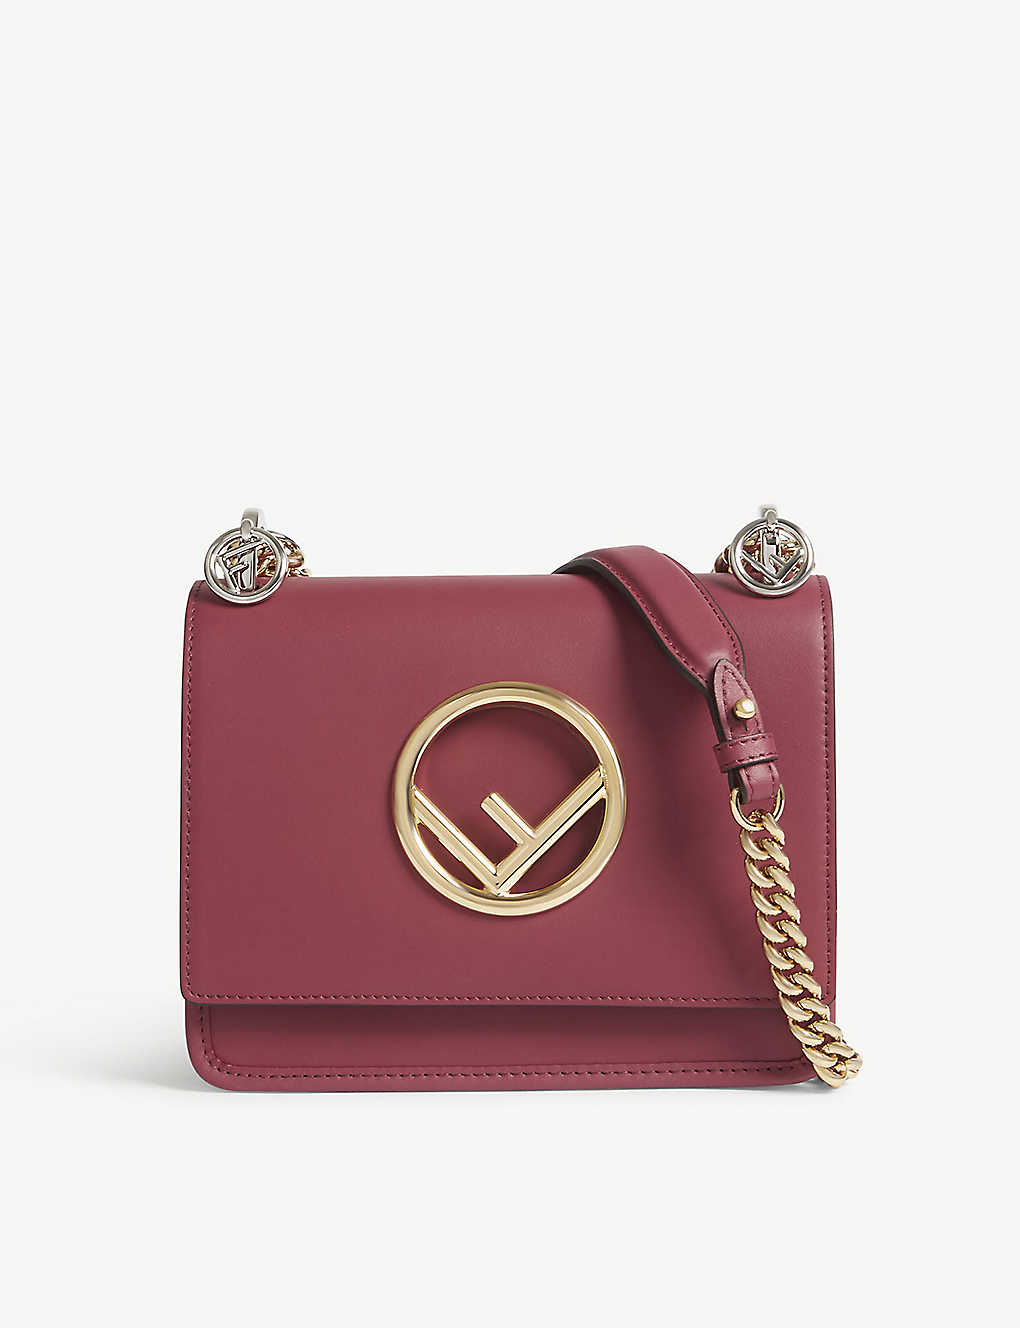 FENDI - Kan I small leather cross-body bag   Selfridges.com fd32645baf